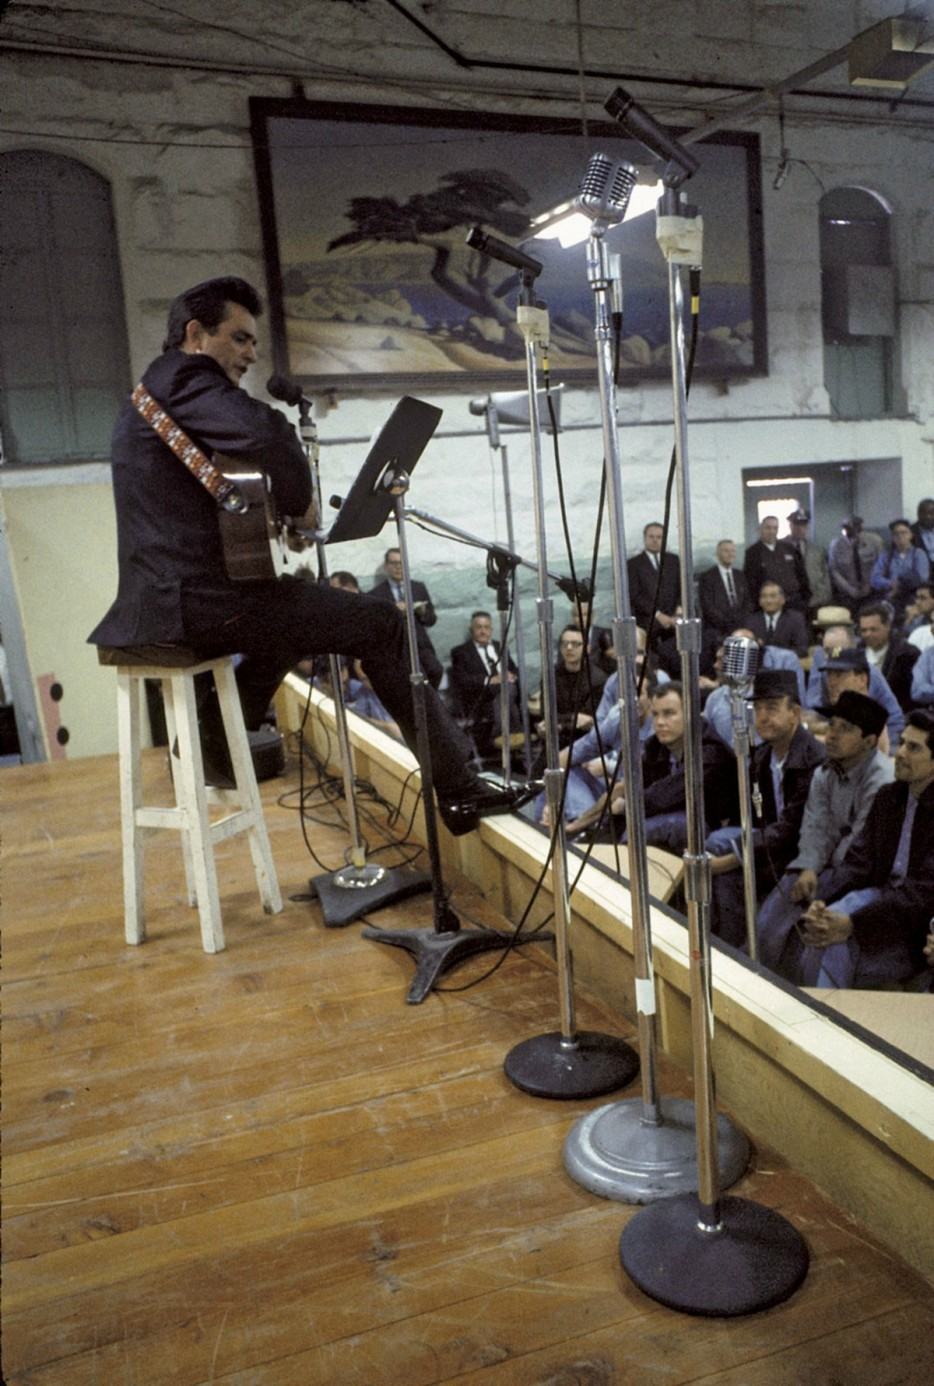 Johnny Cash's famous performance at Folsom Prison